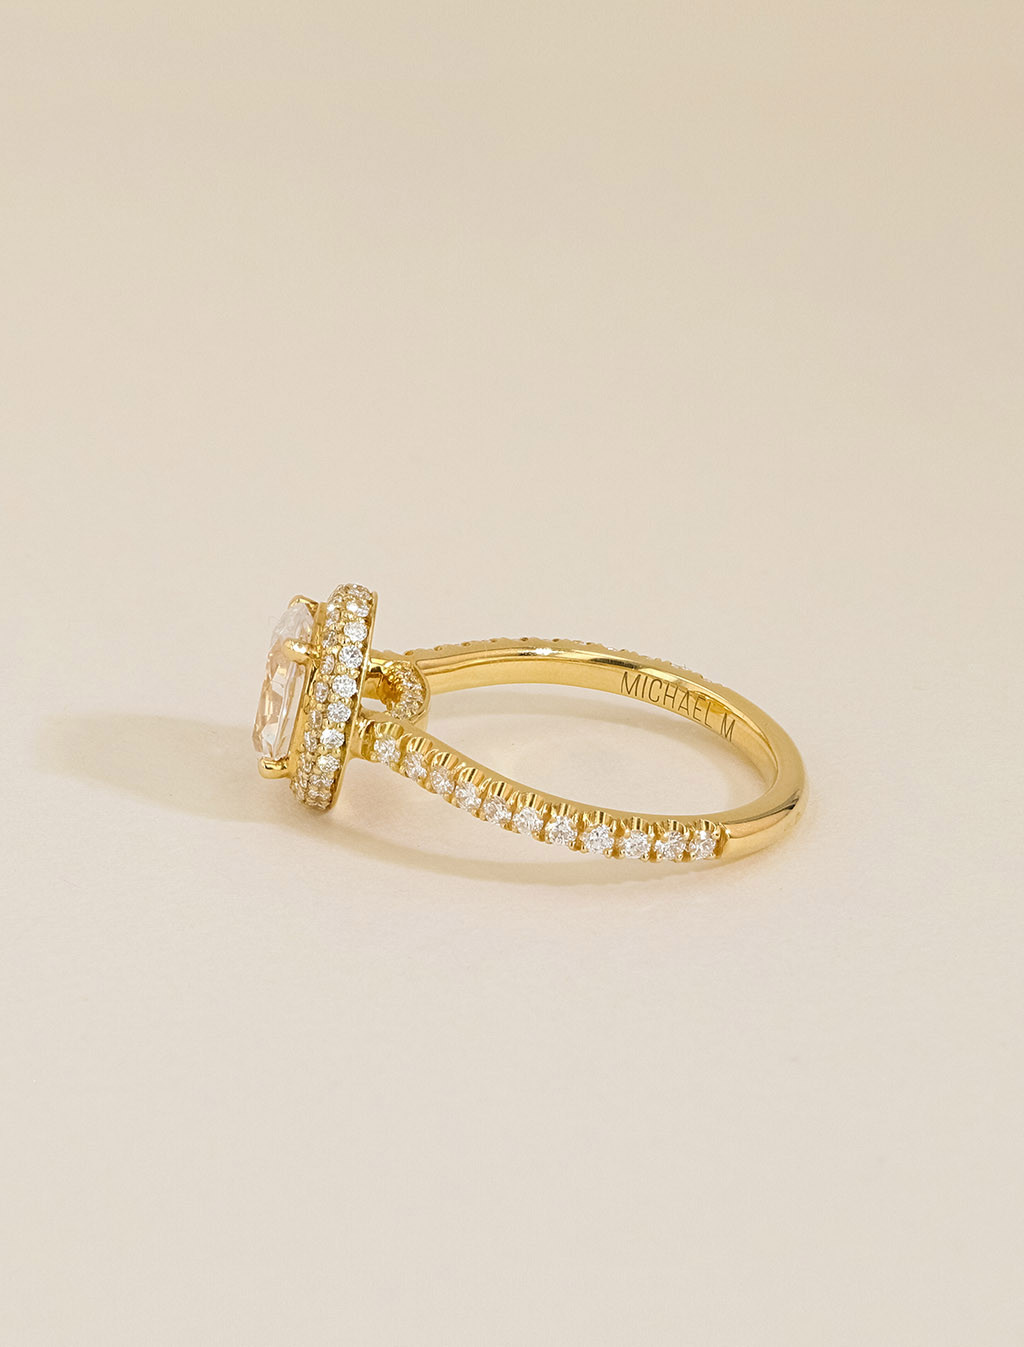 Michael M 18K Gold Oval Halo Pavé Diamond Engagement Ring Setting side view